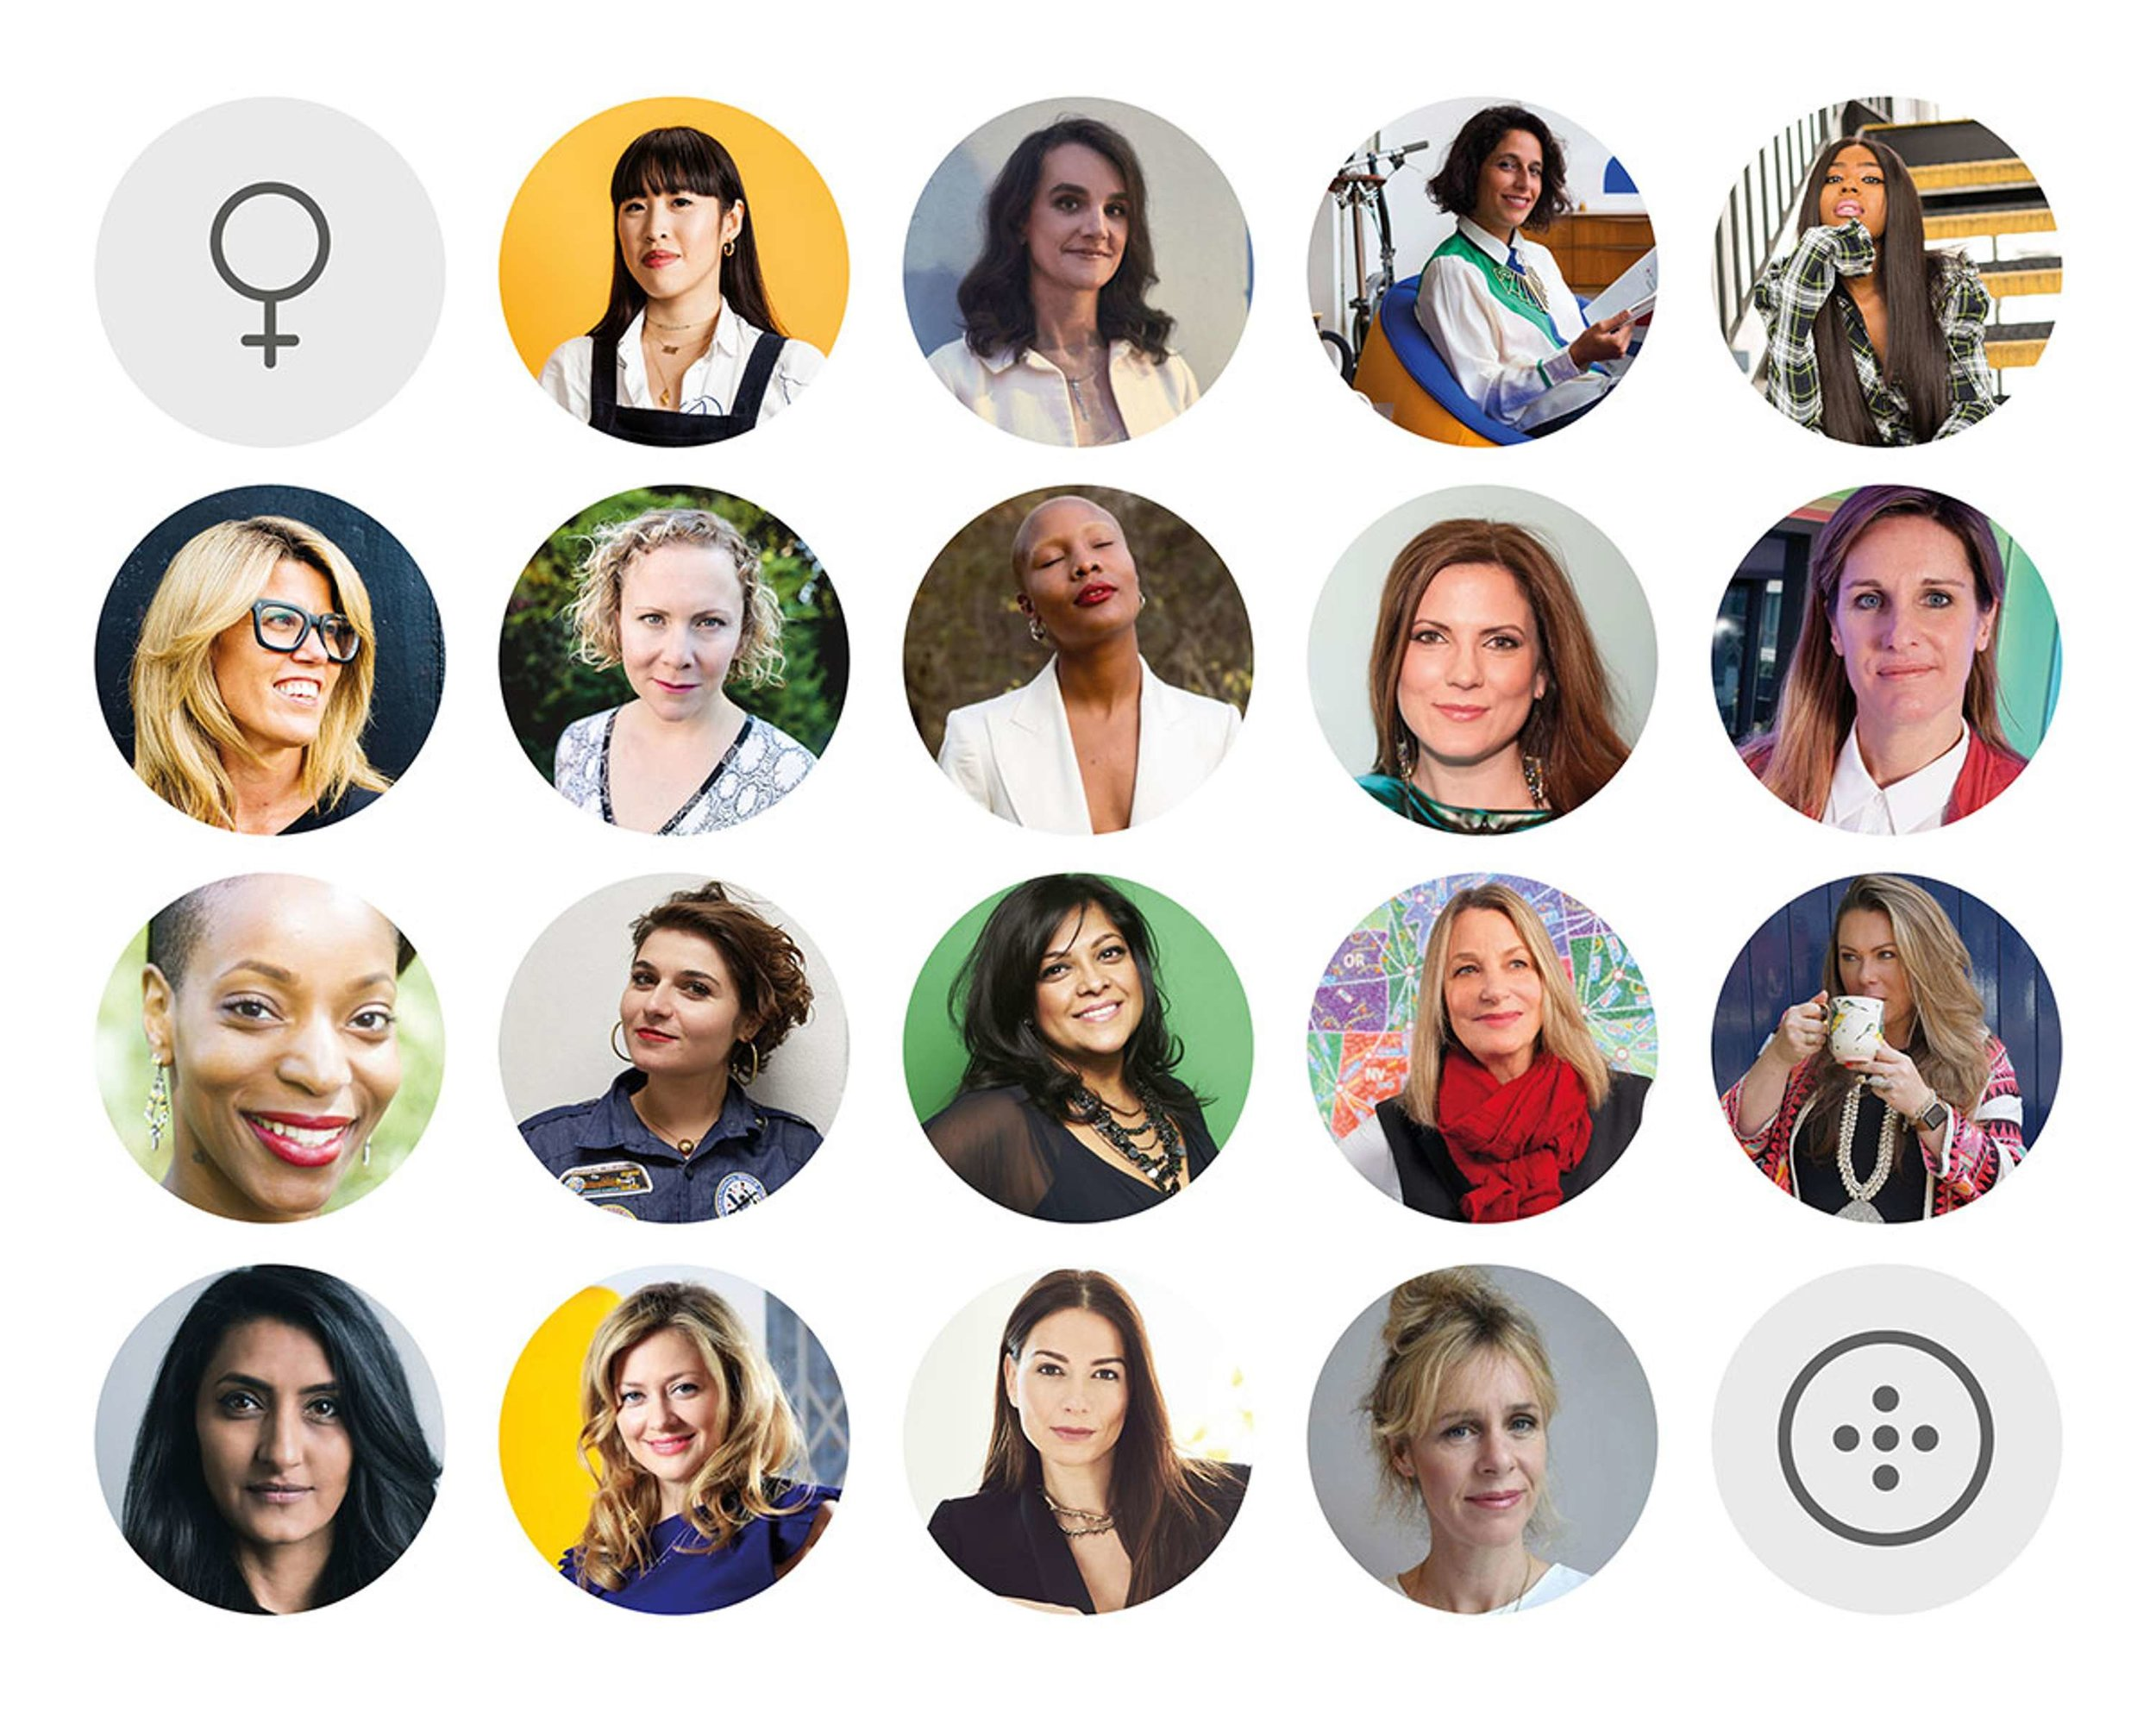 THE DOTS #IWD18  FEATURE  Both Roshni and Leyya were featured a number of times in The Dots '200 Women Redefining the Creative Industry' entered by our heroes Tea Uglow, Nishma Robb, Liv Little and Natalie Campbell. We are so over the moon to have the support of these powerhouses and chuffed with this feature!